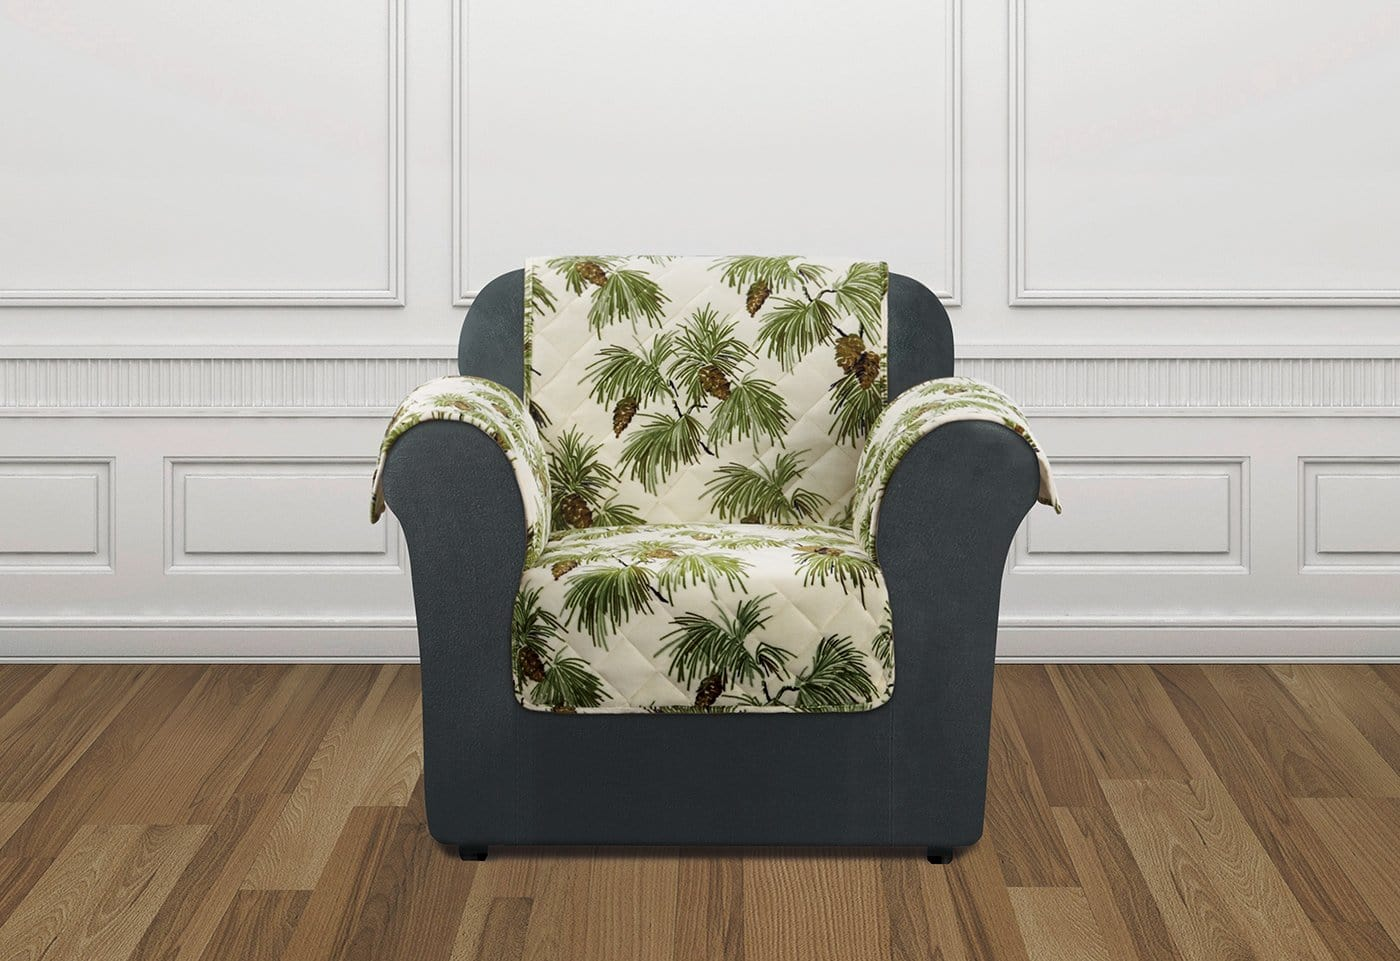 Holiday Chair Furniture Cover 100% Polyester Pet Furniture Cover Machine Washable - Chair / Pinecone Ivory